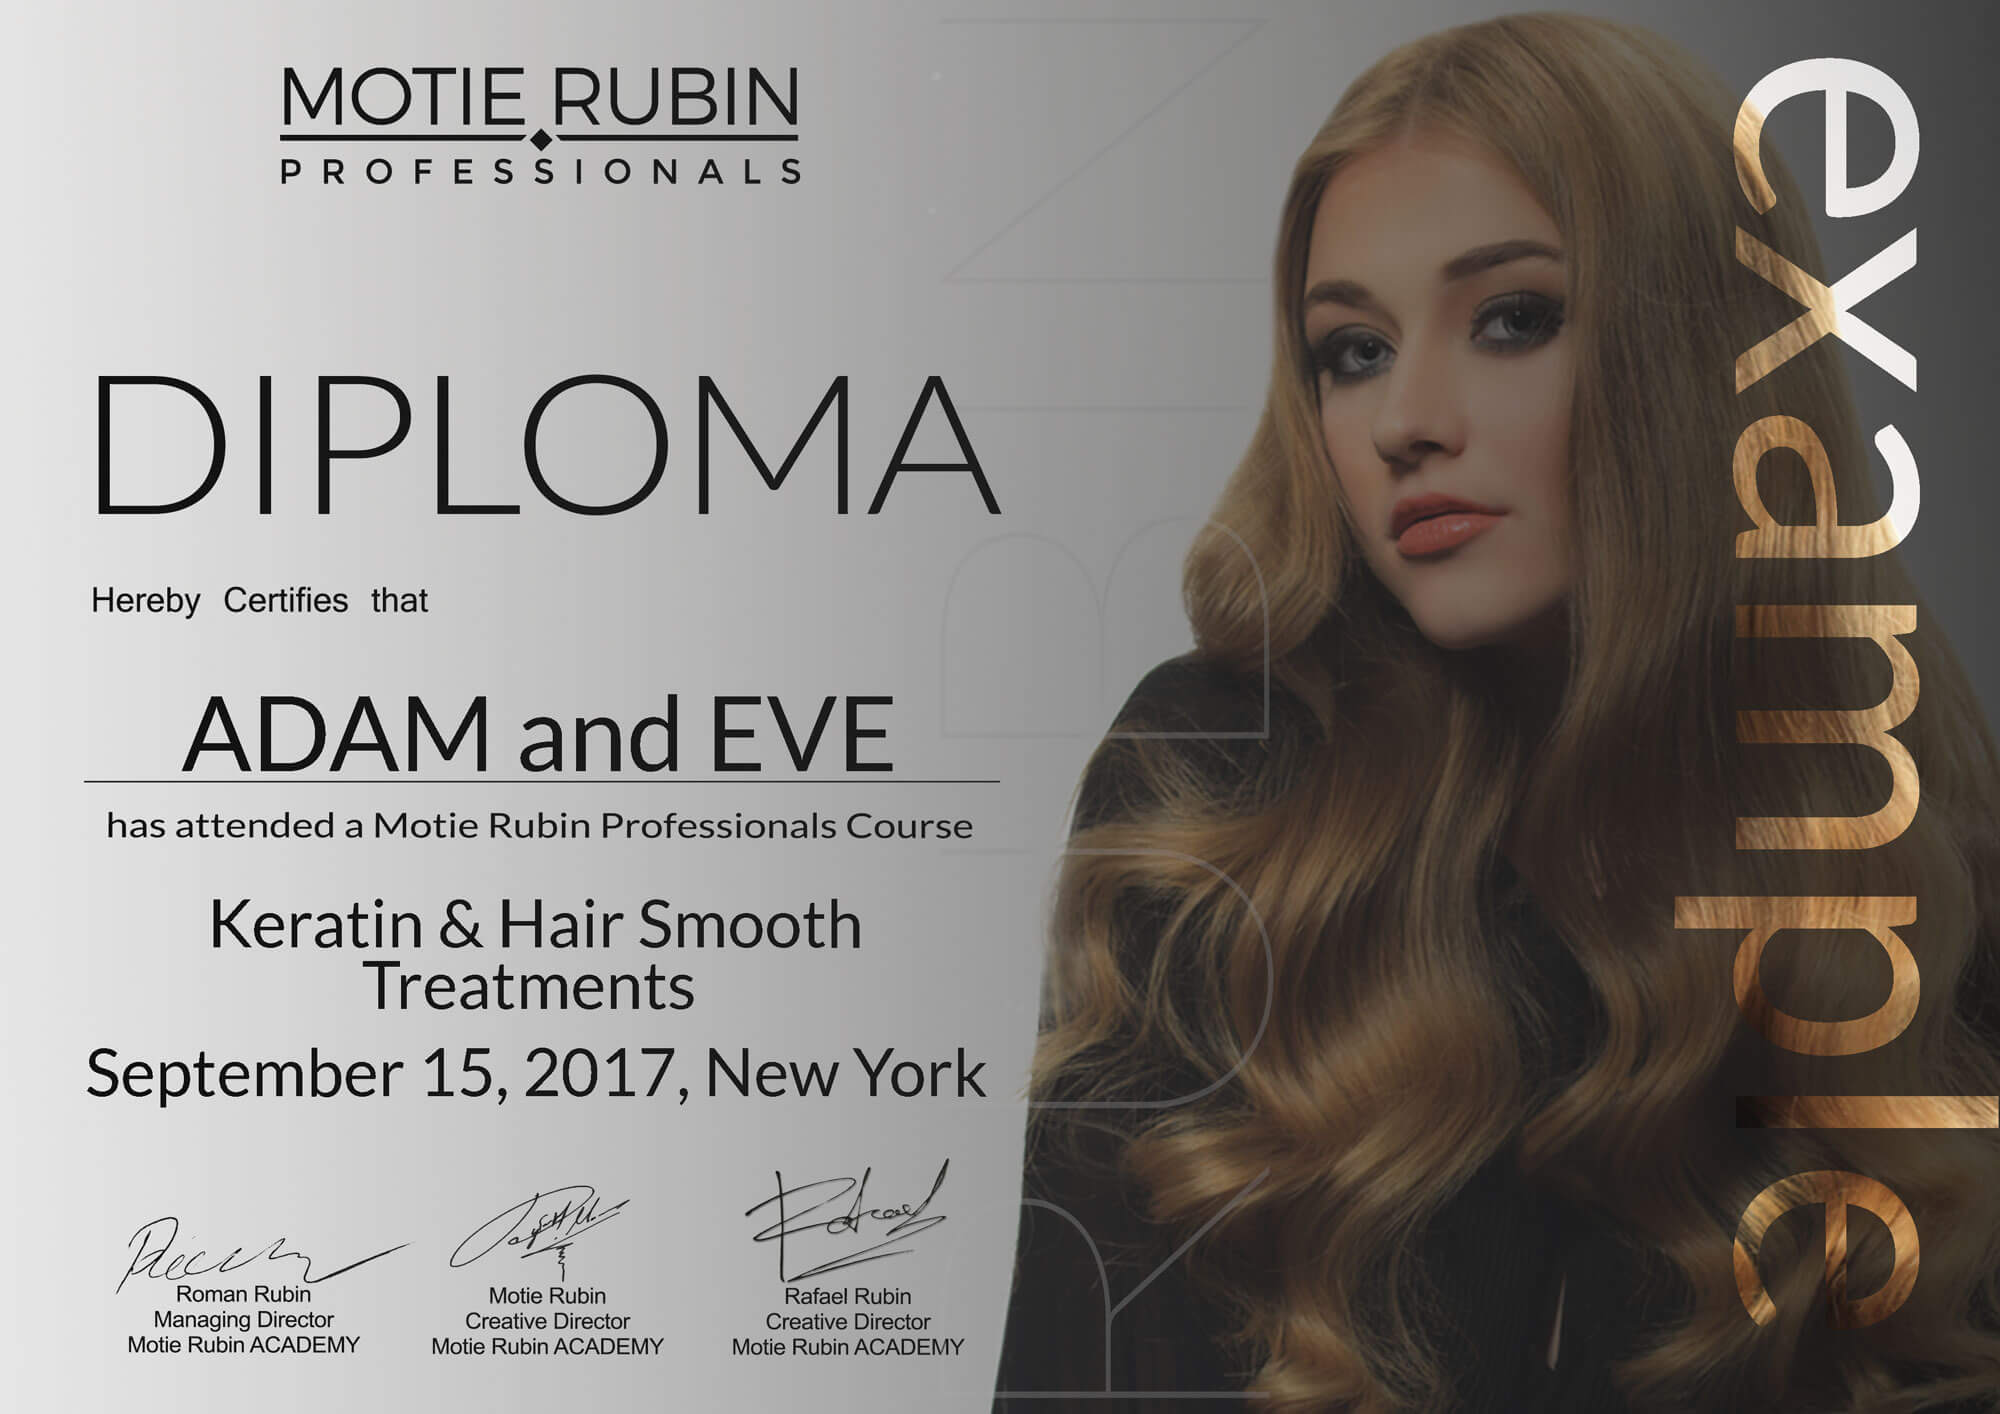 Professional Smoothing Treatments and Courses